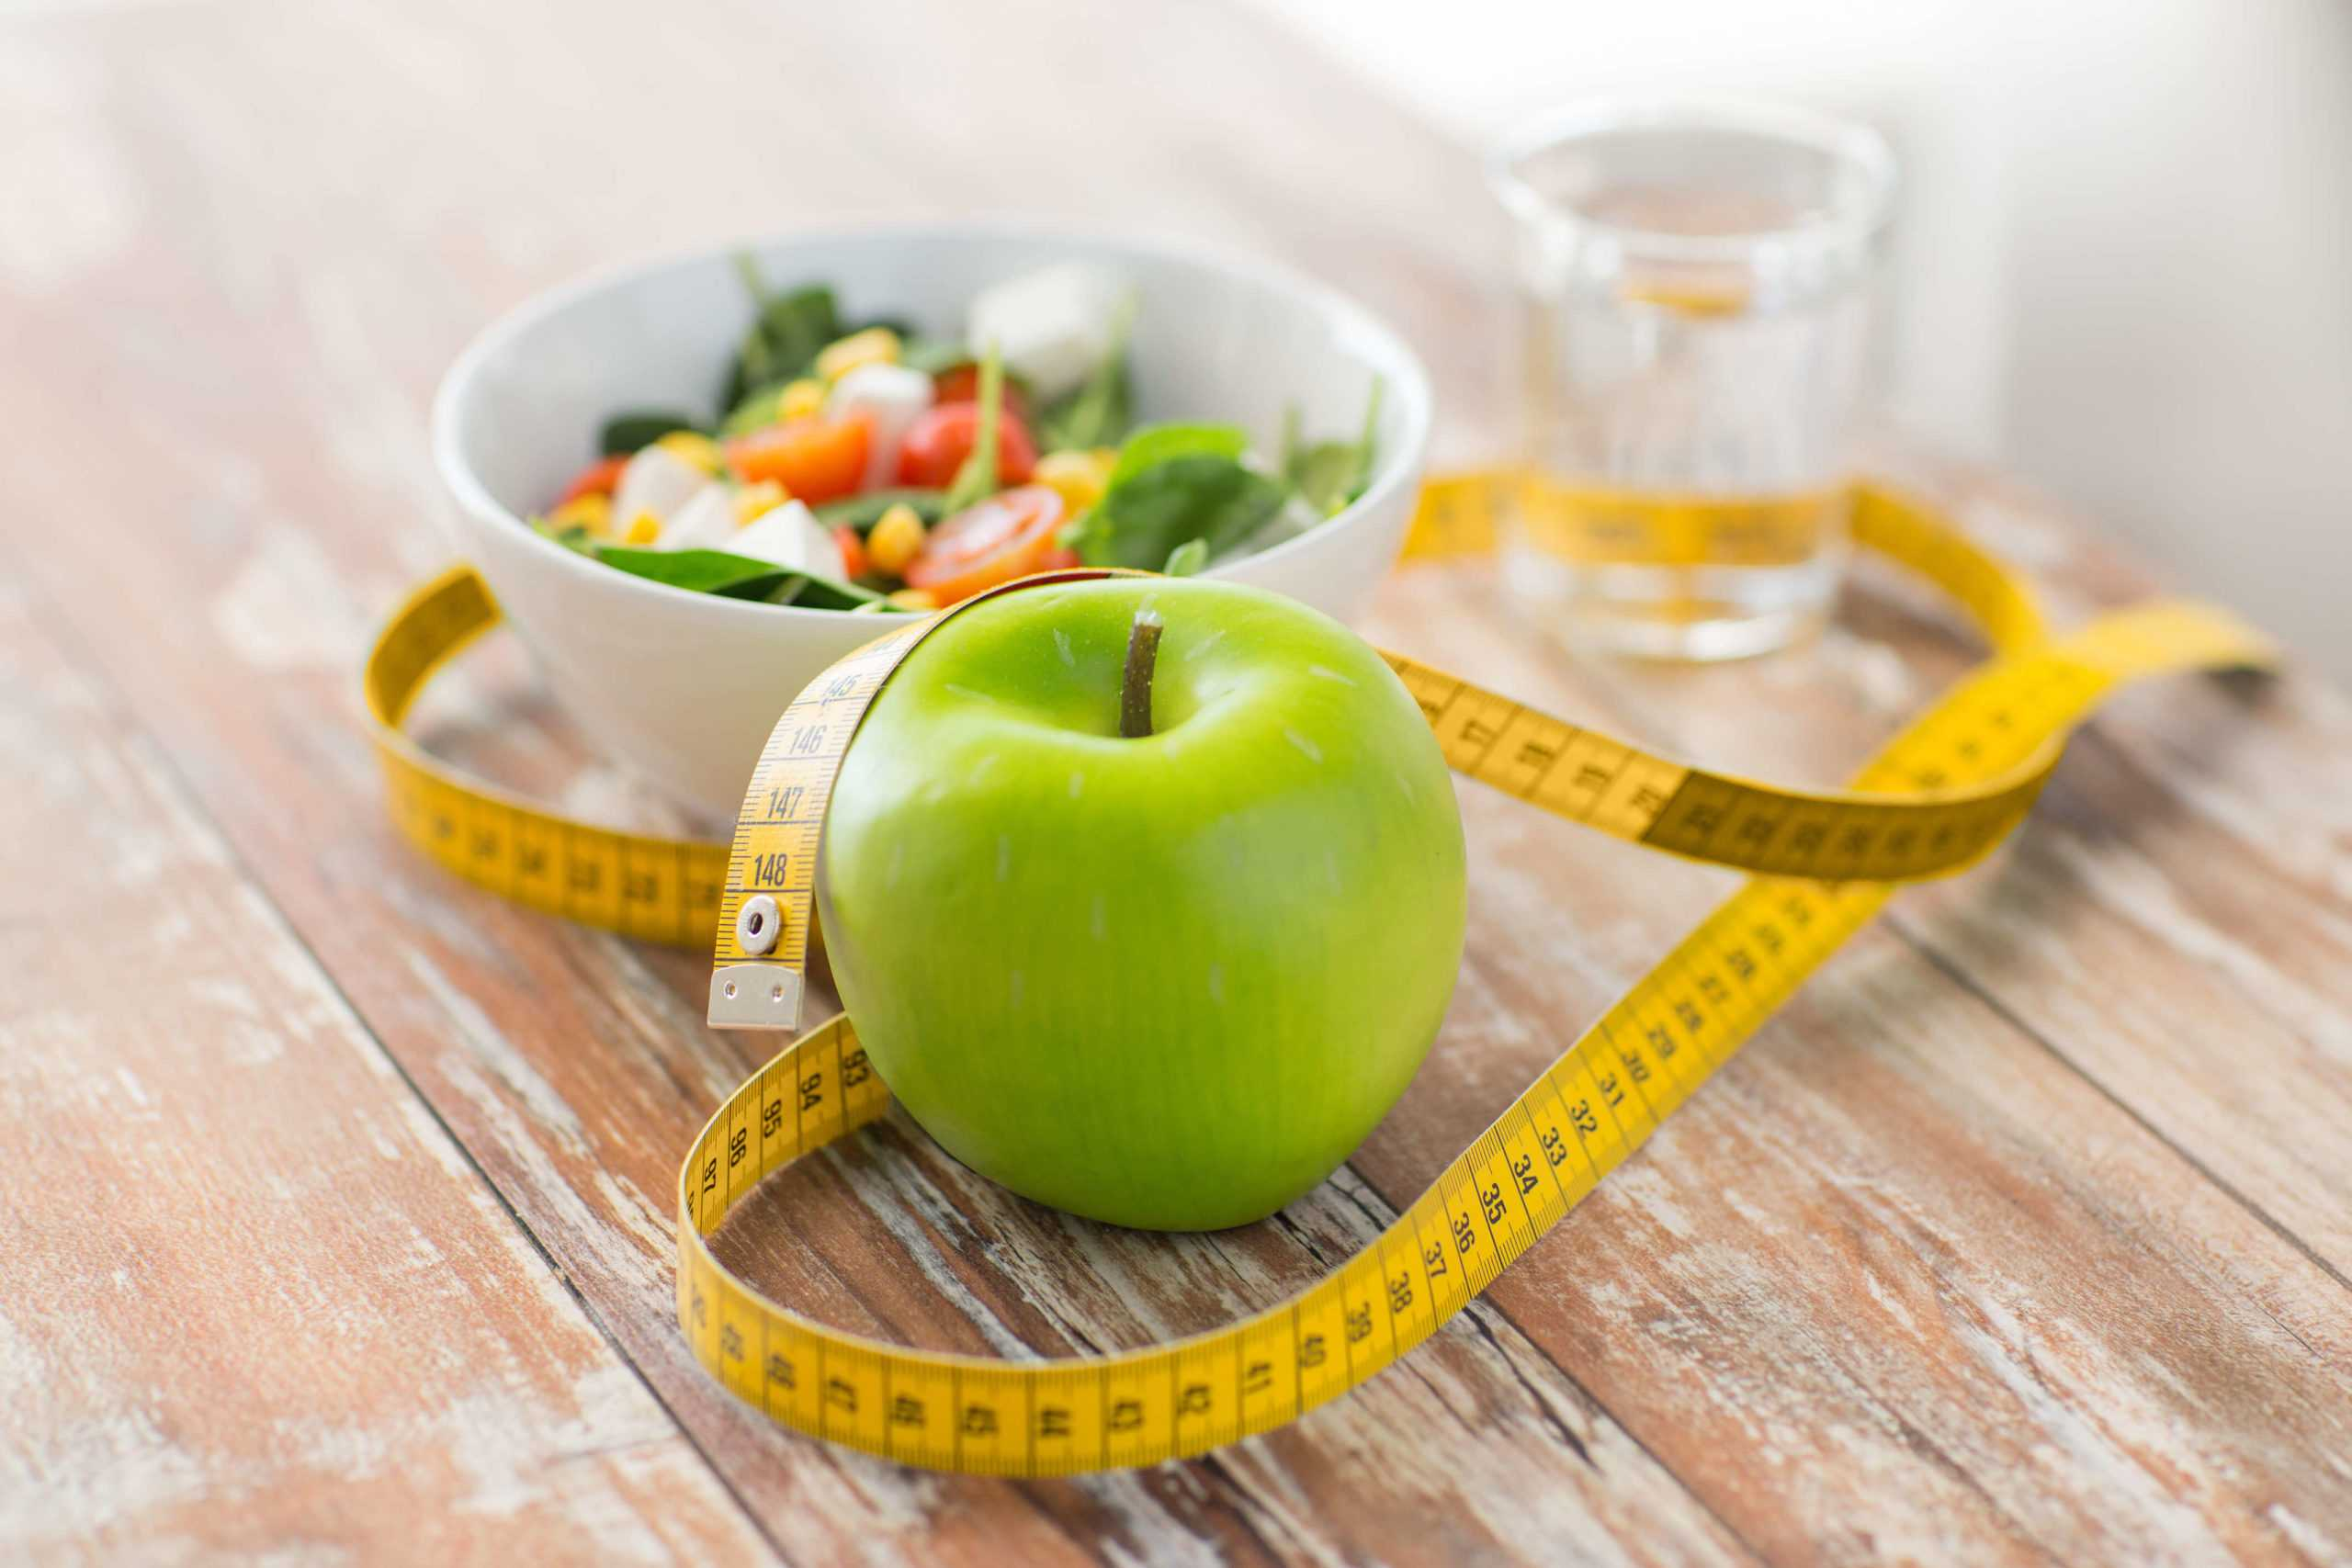 A Registered Dietitian's Take on Fad Diets